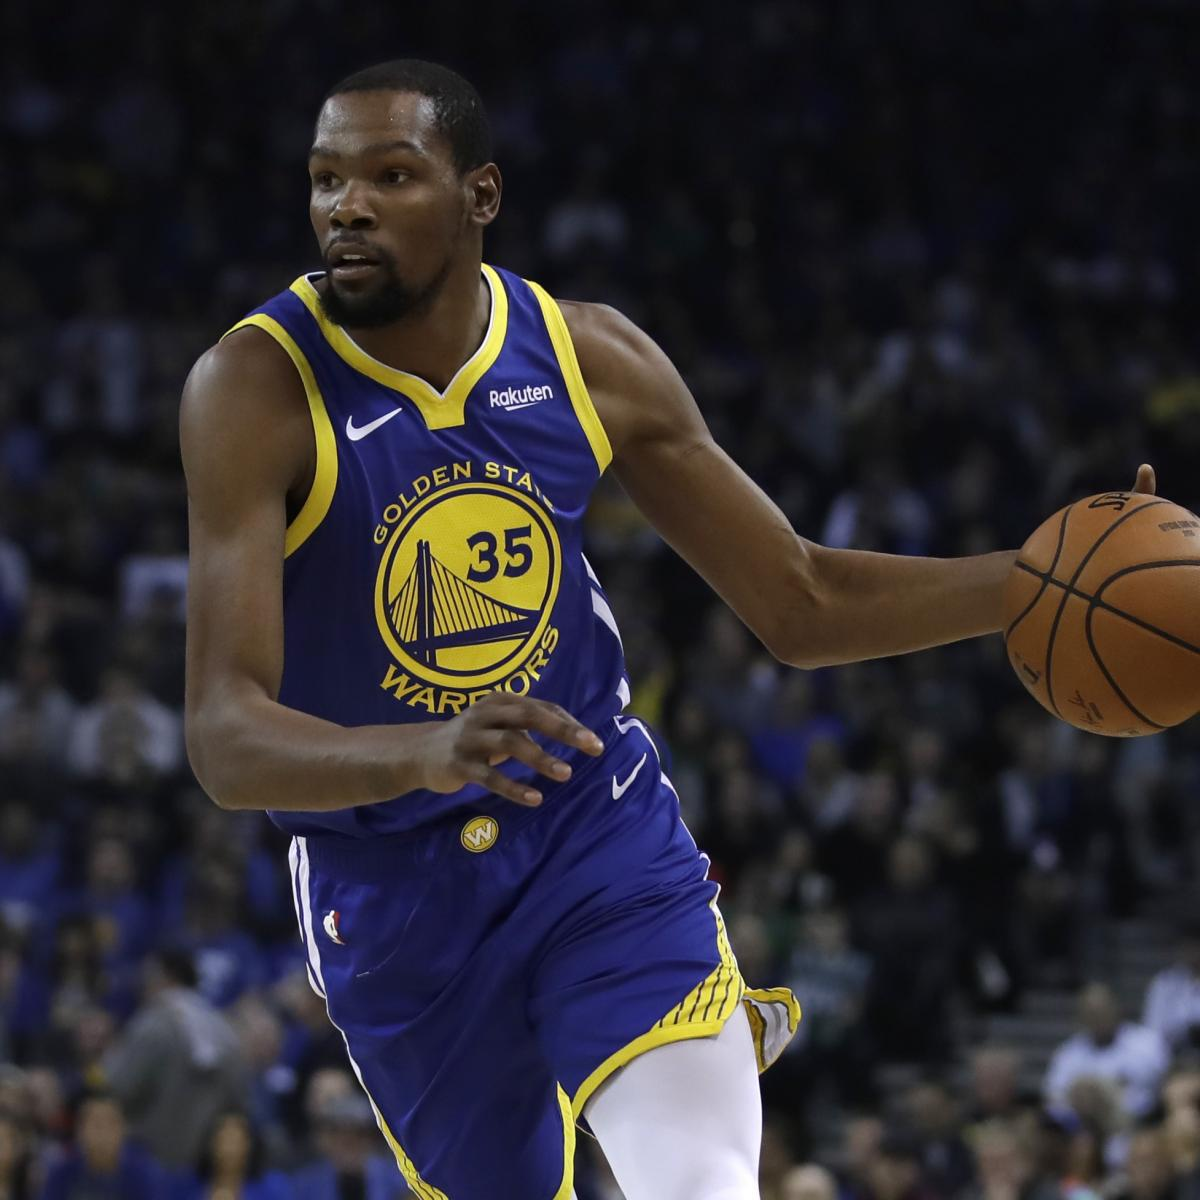 There has been plenty of speculation about whether Kevin Durant will leave the Golden State Warriors in free agency this summer, and some inside the Warriors organization are likewise worried...